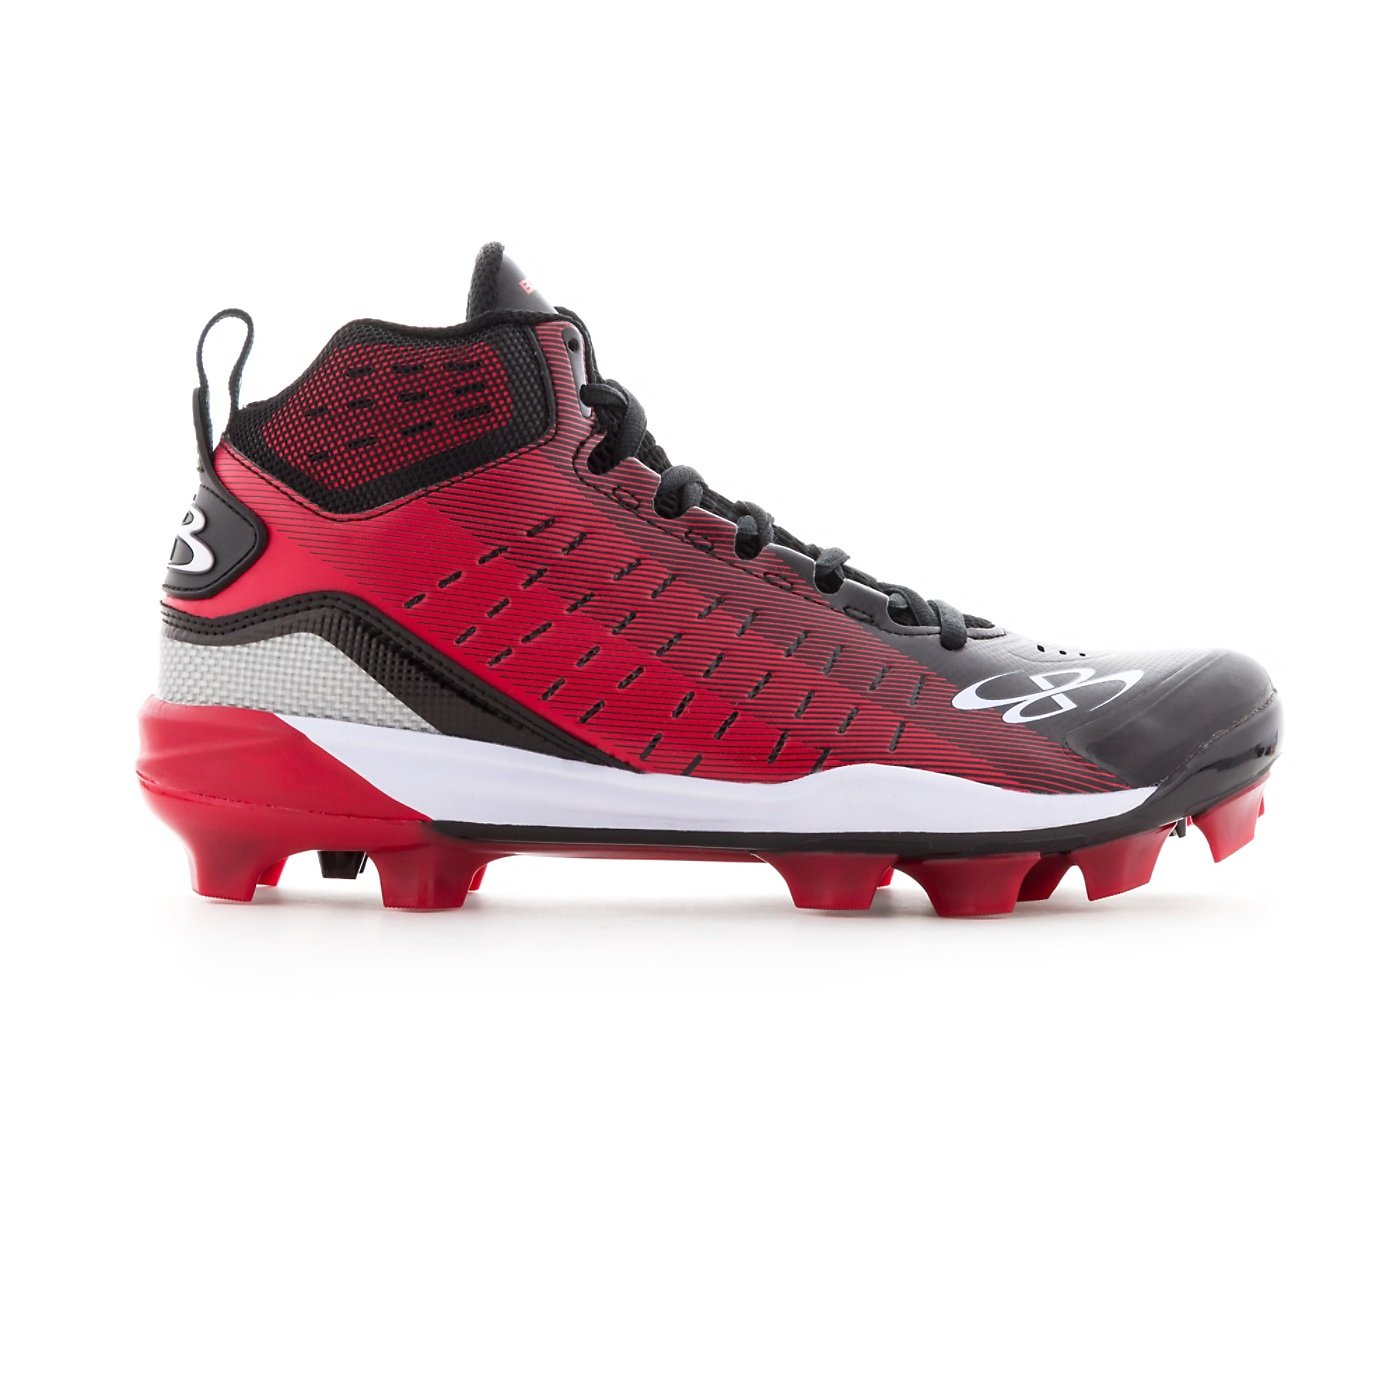 Boombah Men's Catalyst Molded Mid Cleats - 8 Color Options - Multiple Sizes B07B1HMLJ7 6.5 Black/Red